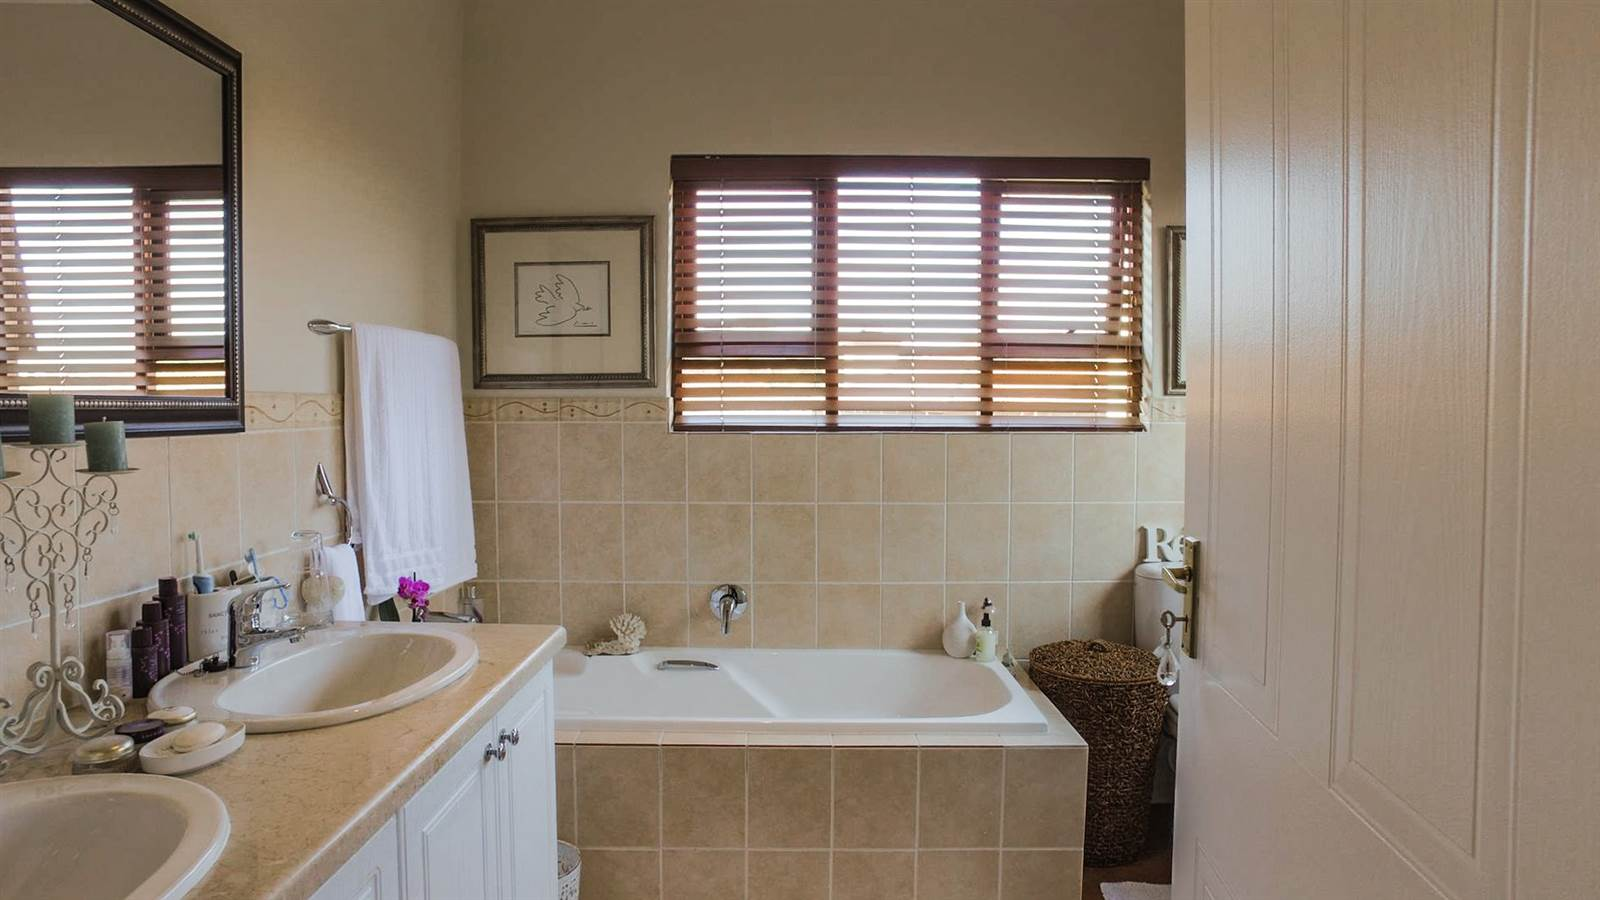 4 Bedroom Townhouse for sale in Mulbarton ENT0067436 : photo#26